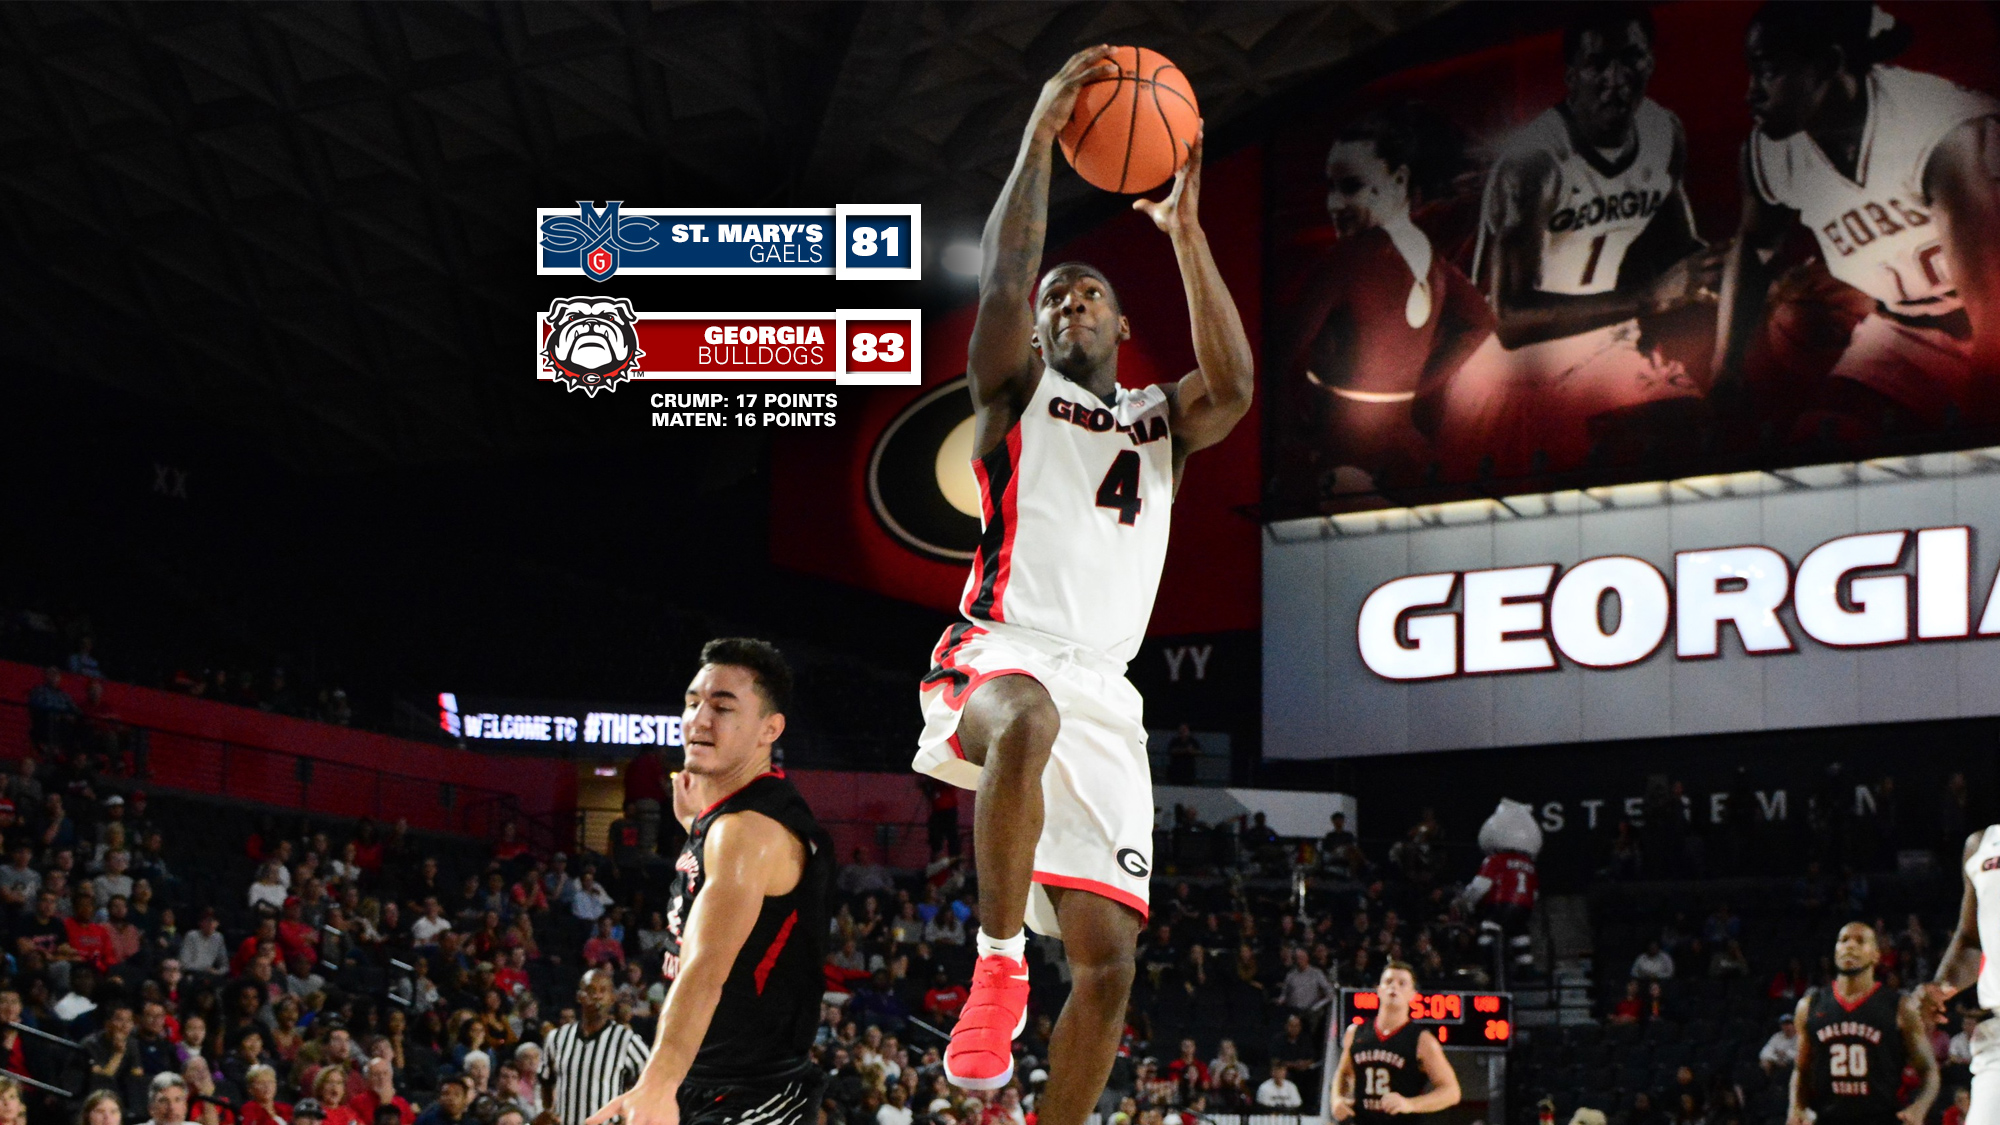 Georgia Downs No 21 St Mary s in Overtime 83 81